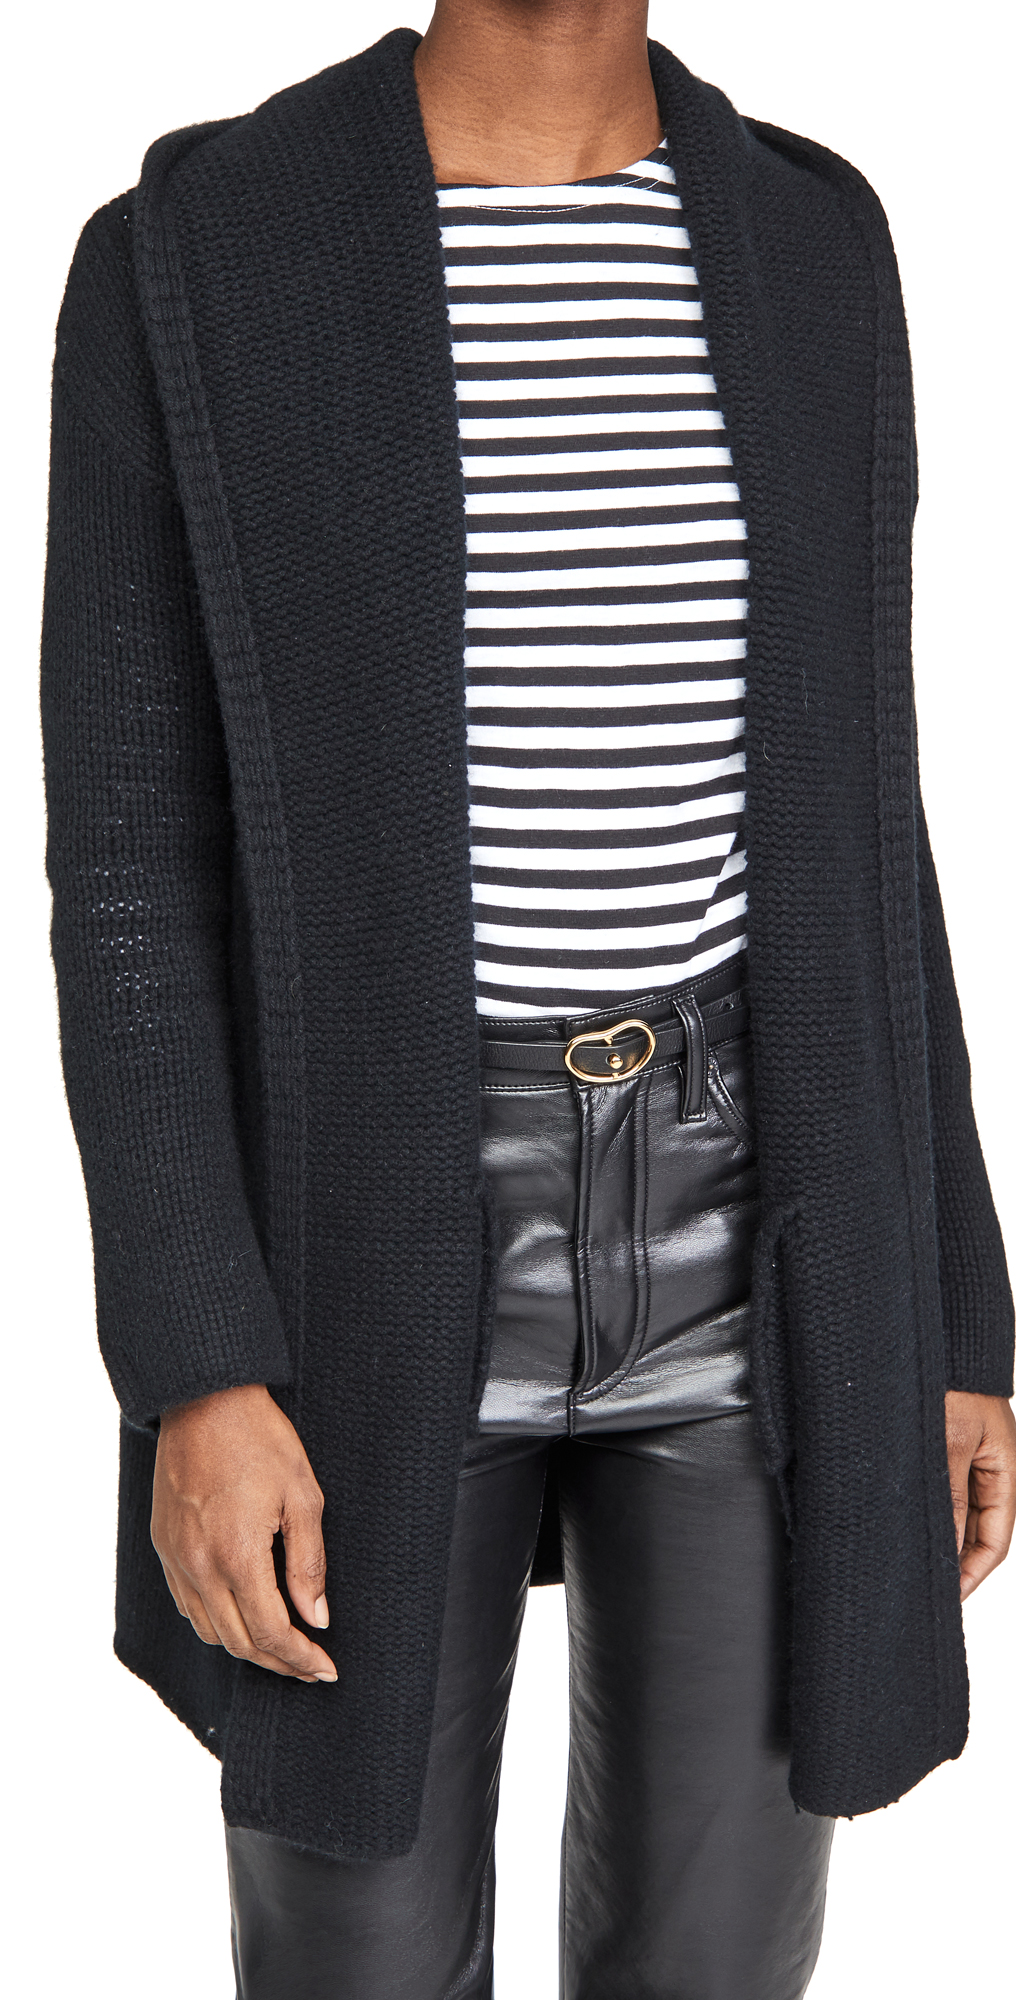 Sablyn Collette Cozy Cashmere Long Sweater